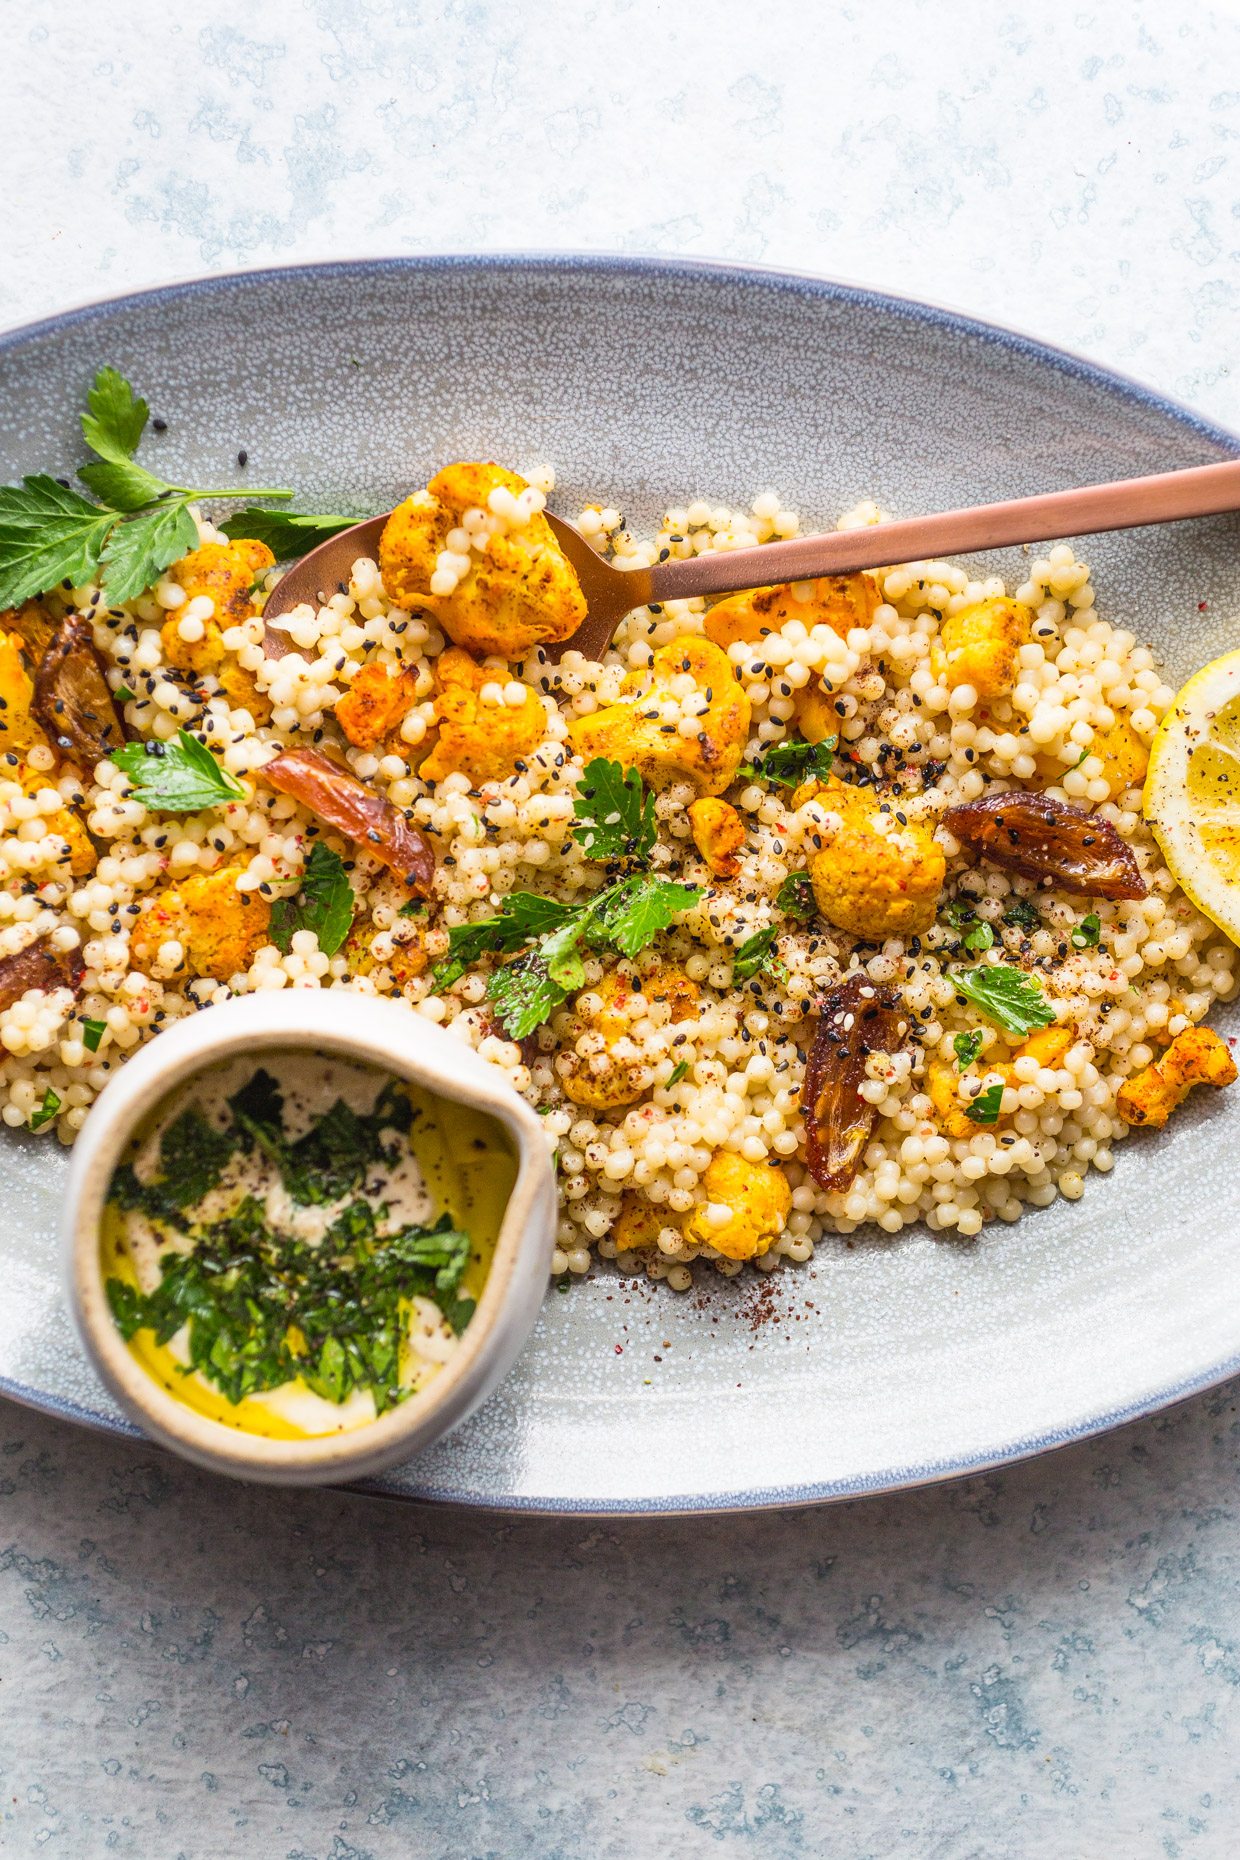 Roasted Cauliflower & Dates Couscous Salad with Creamy Tahini